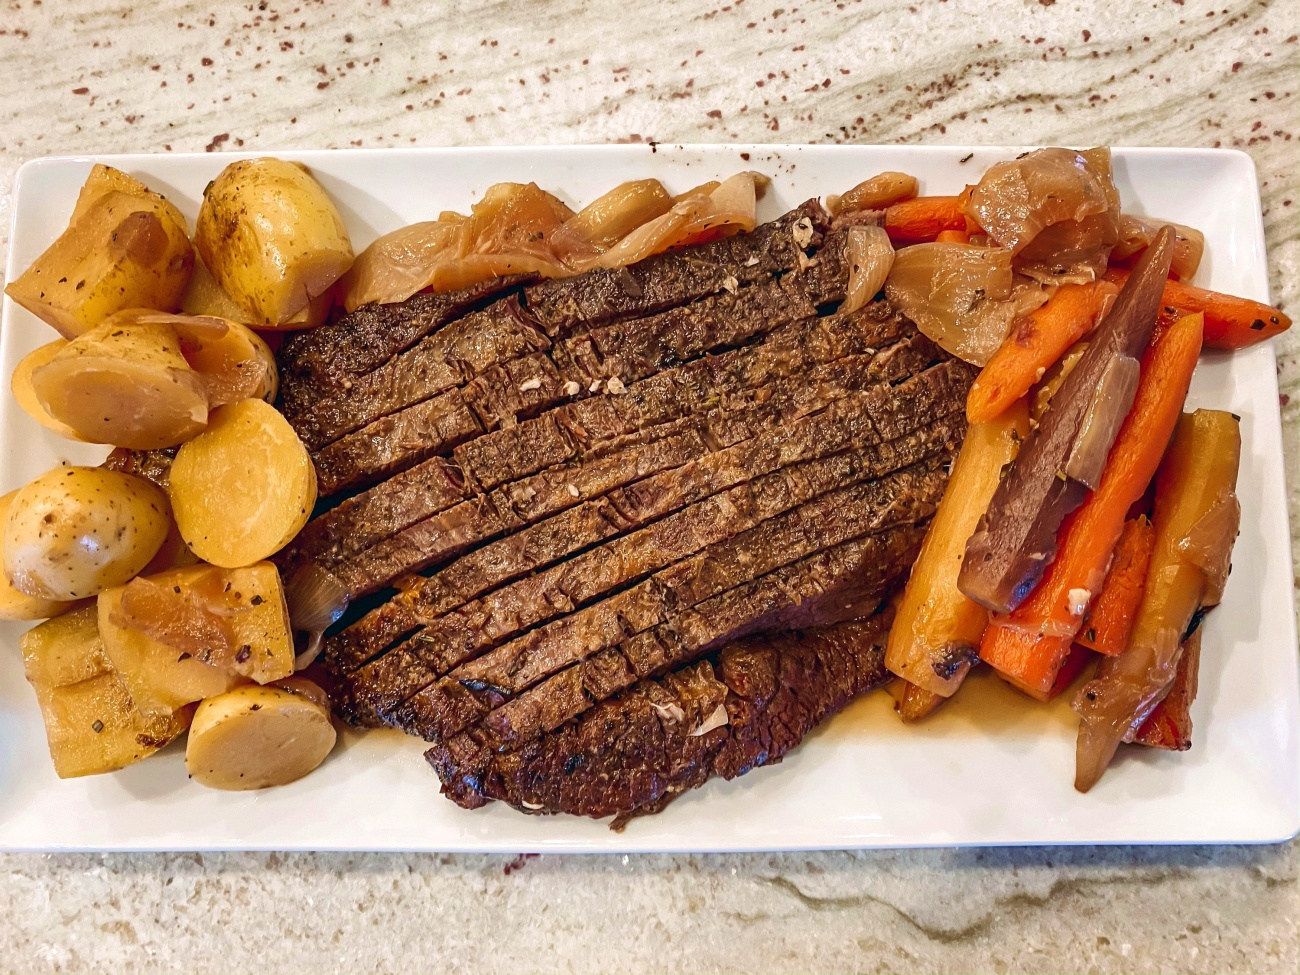 Slice the brisket against the grain, serve with veggies and potatoes. Enjoy!